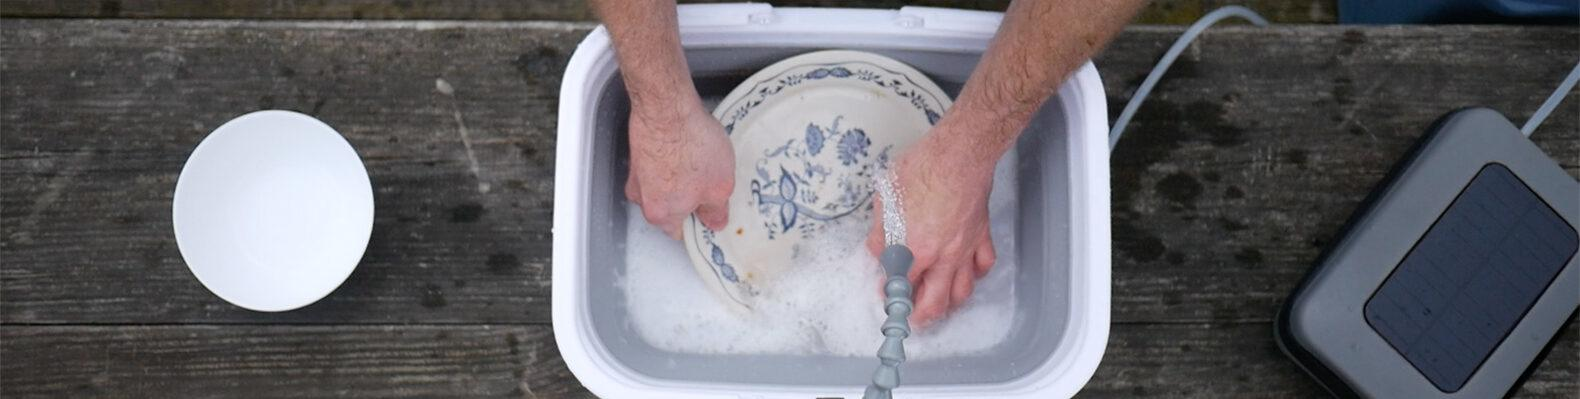 person washing dishes in a small, portable sink